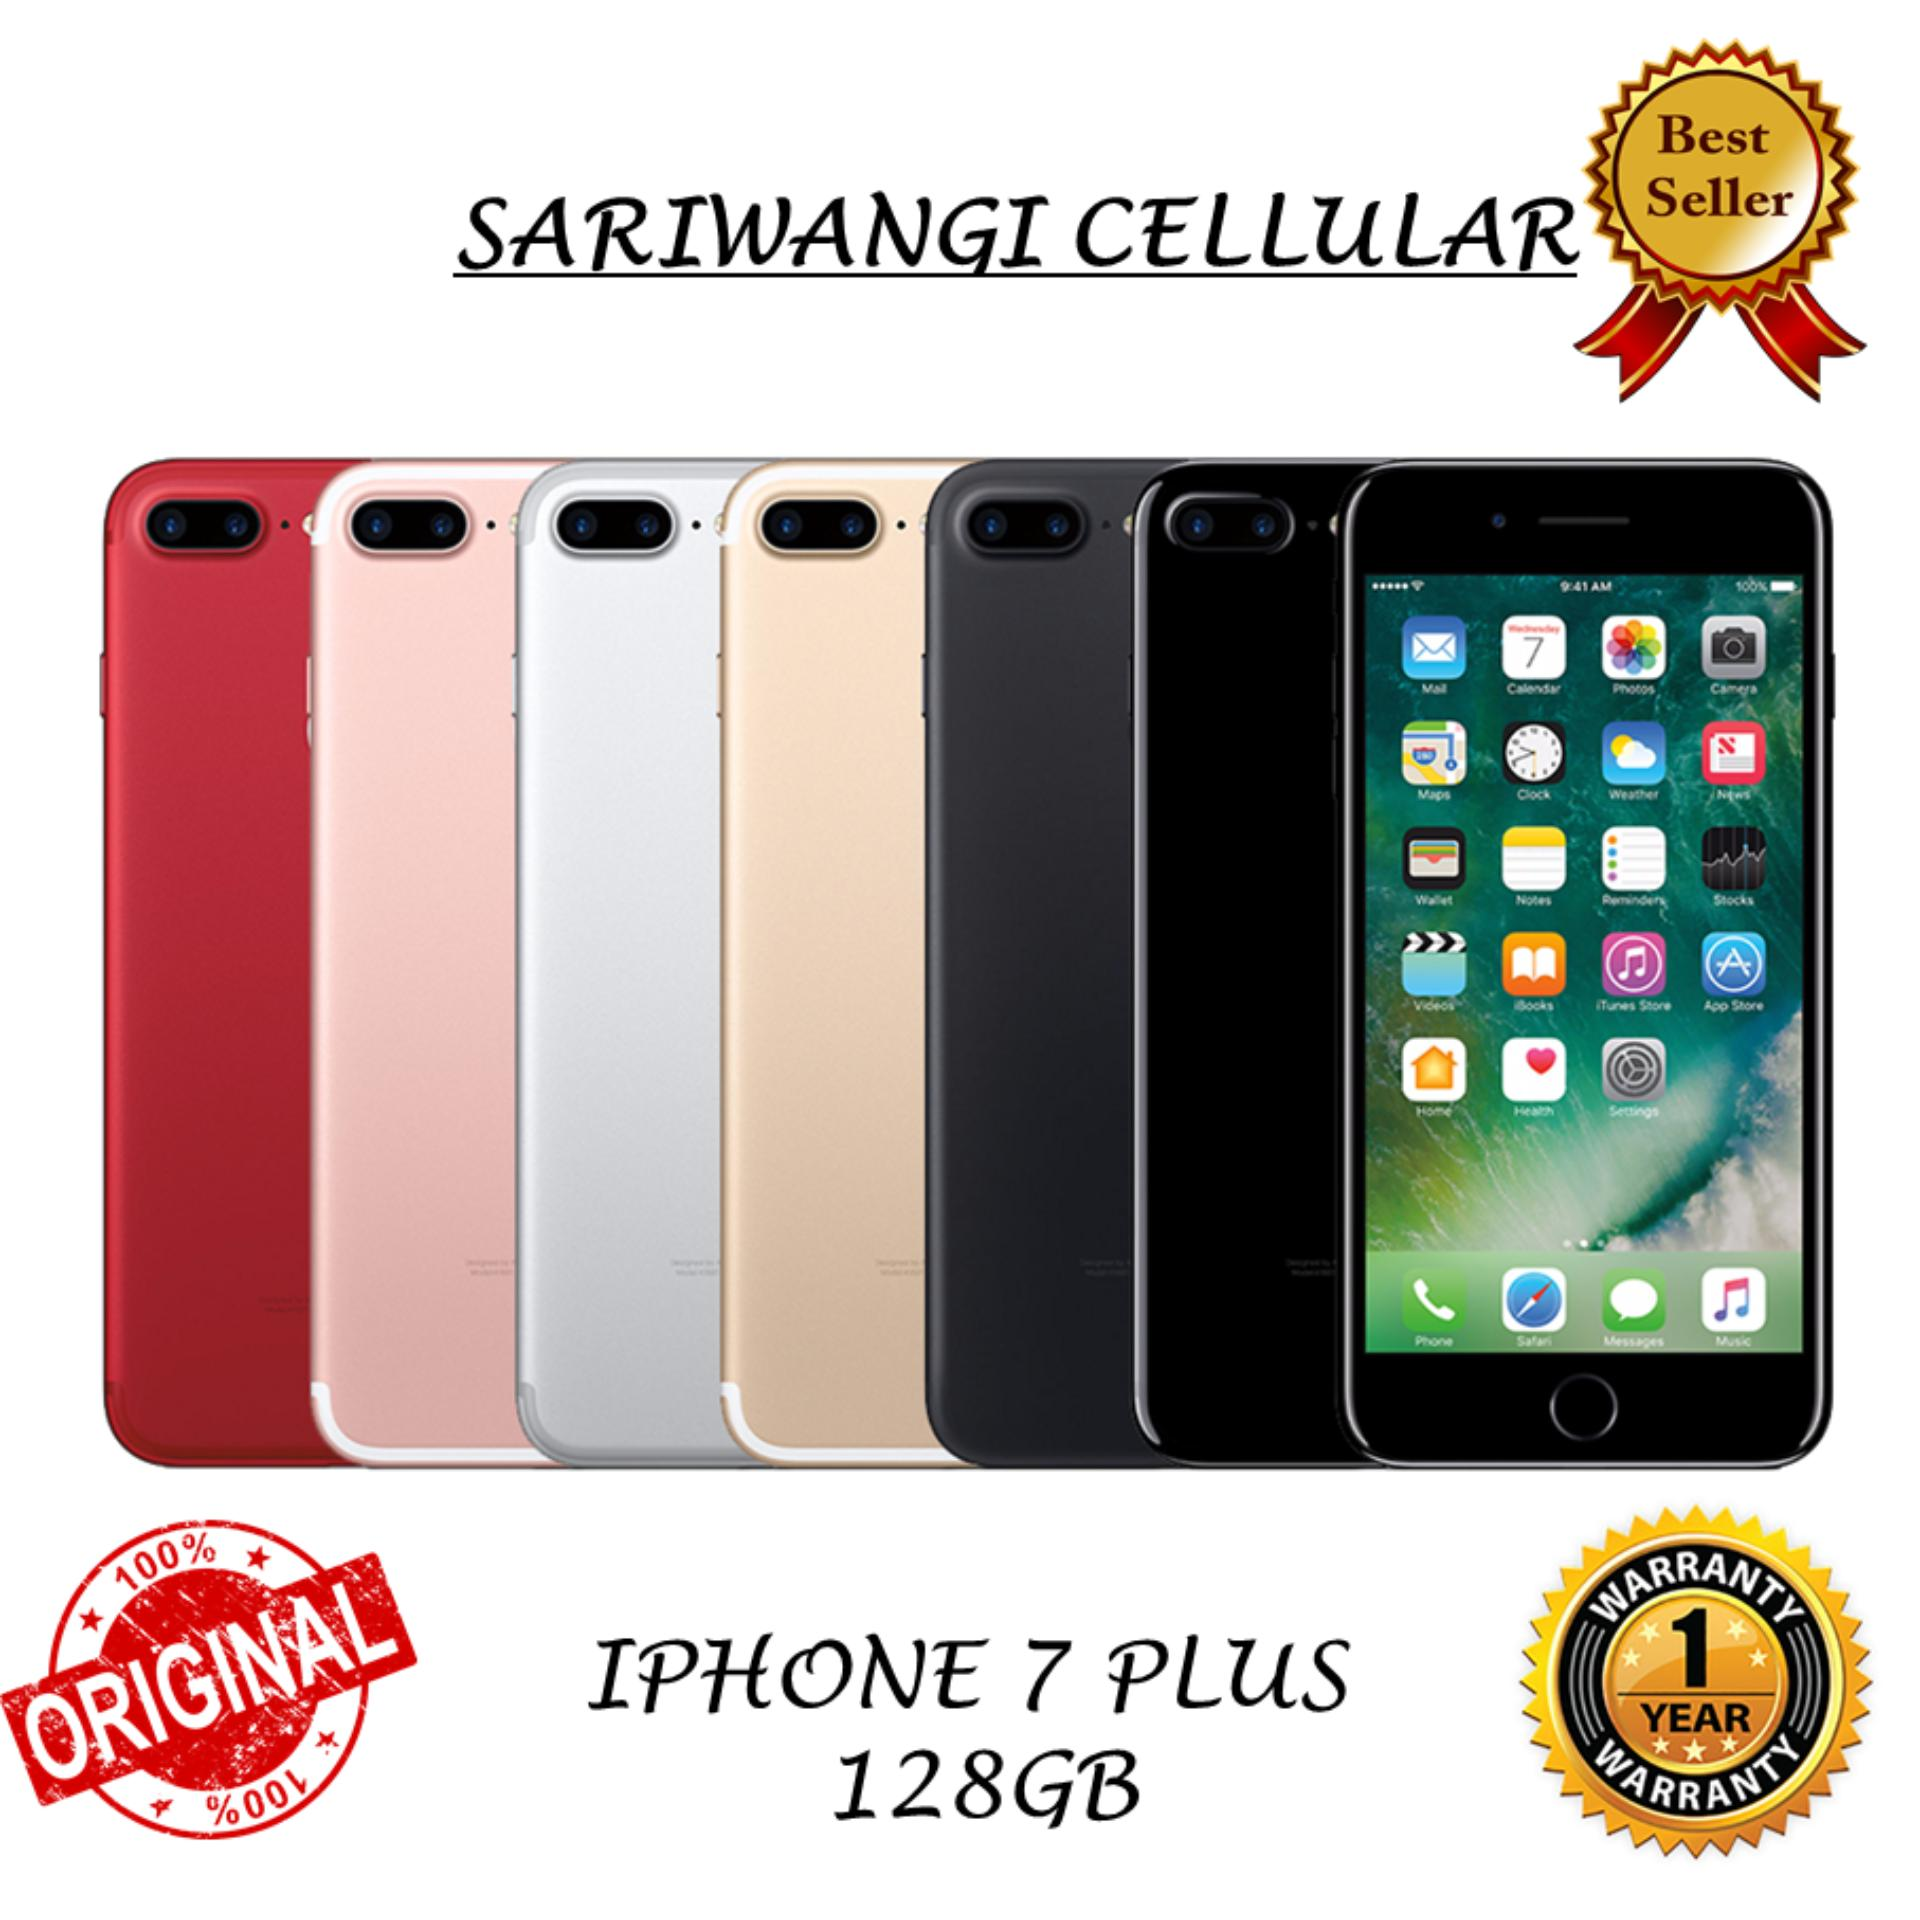 Iphone 7 Plus 128gb Original Bergaransi